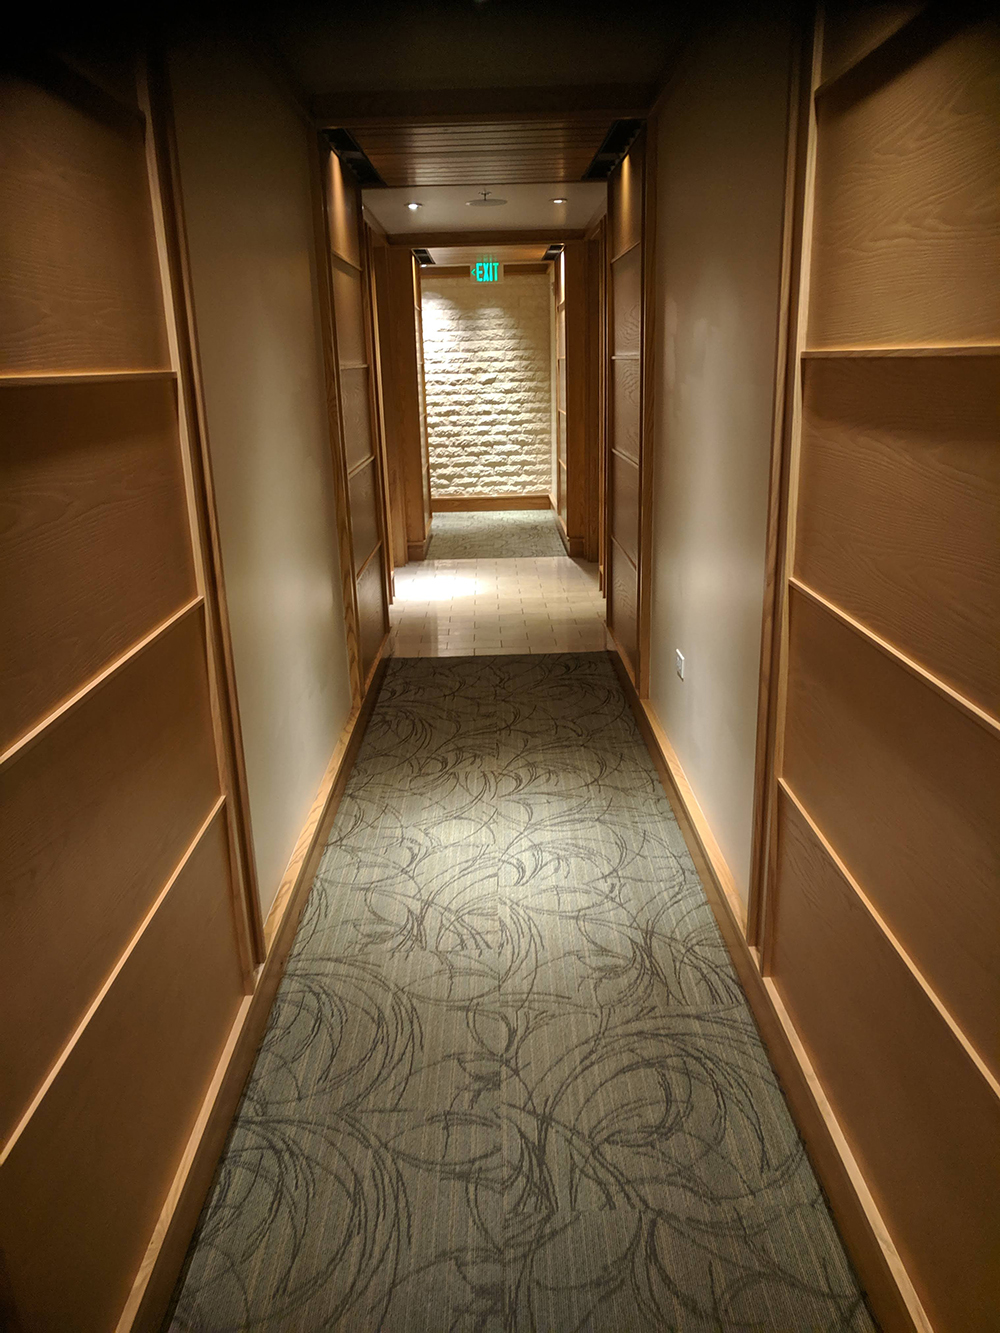 The hallway leads to 15 treatment rooms.